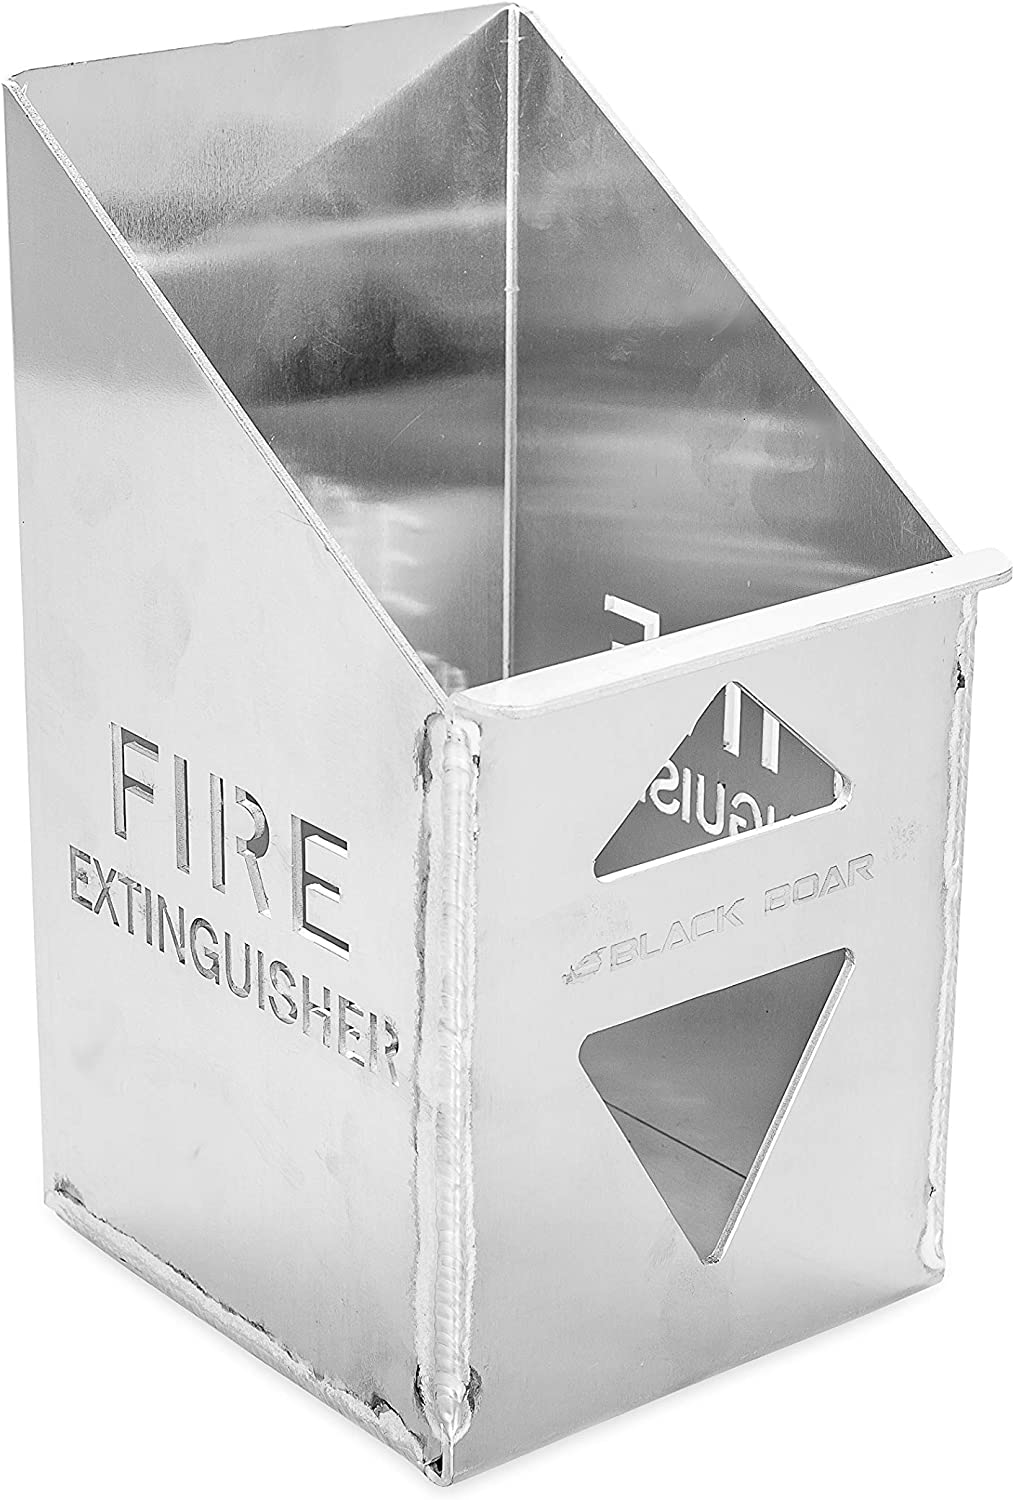 rag Box Securely Holds 66103 Black Boar Aluminum Holder for Enclosed Trailer//Garage 1 Durable Construction Easy to Install